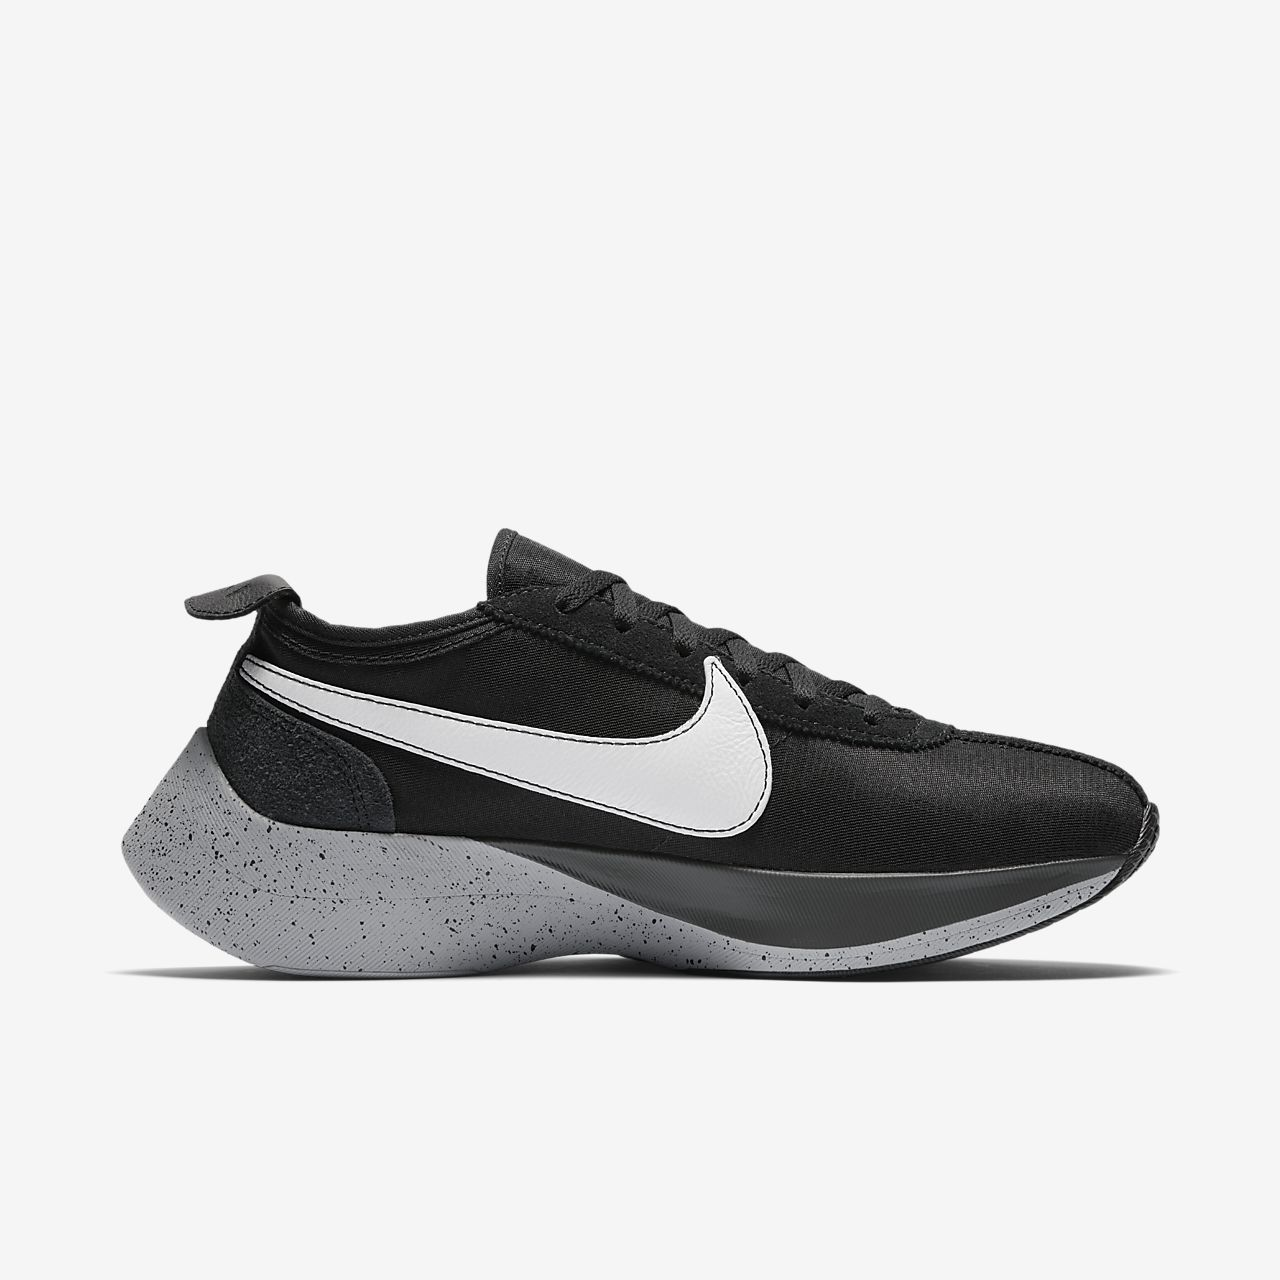 Racer Nike Moon Pour Chaussure Homme wOXZTlPuik